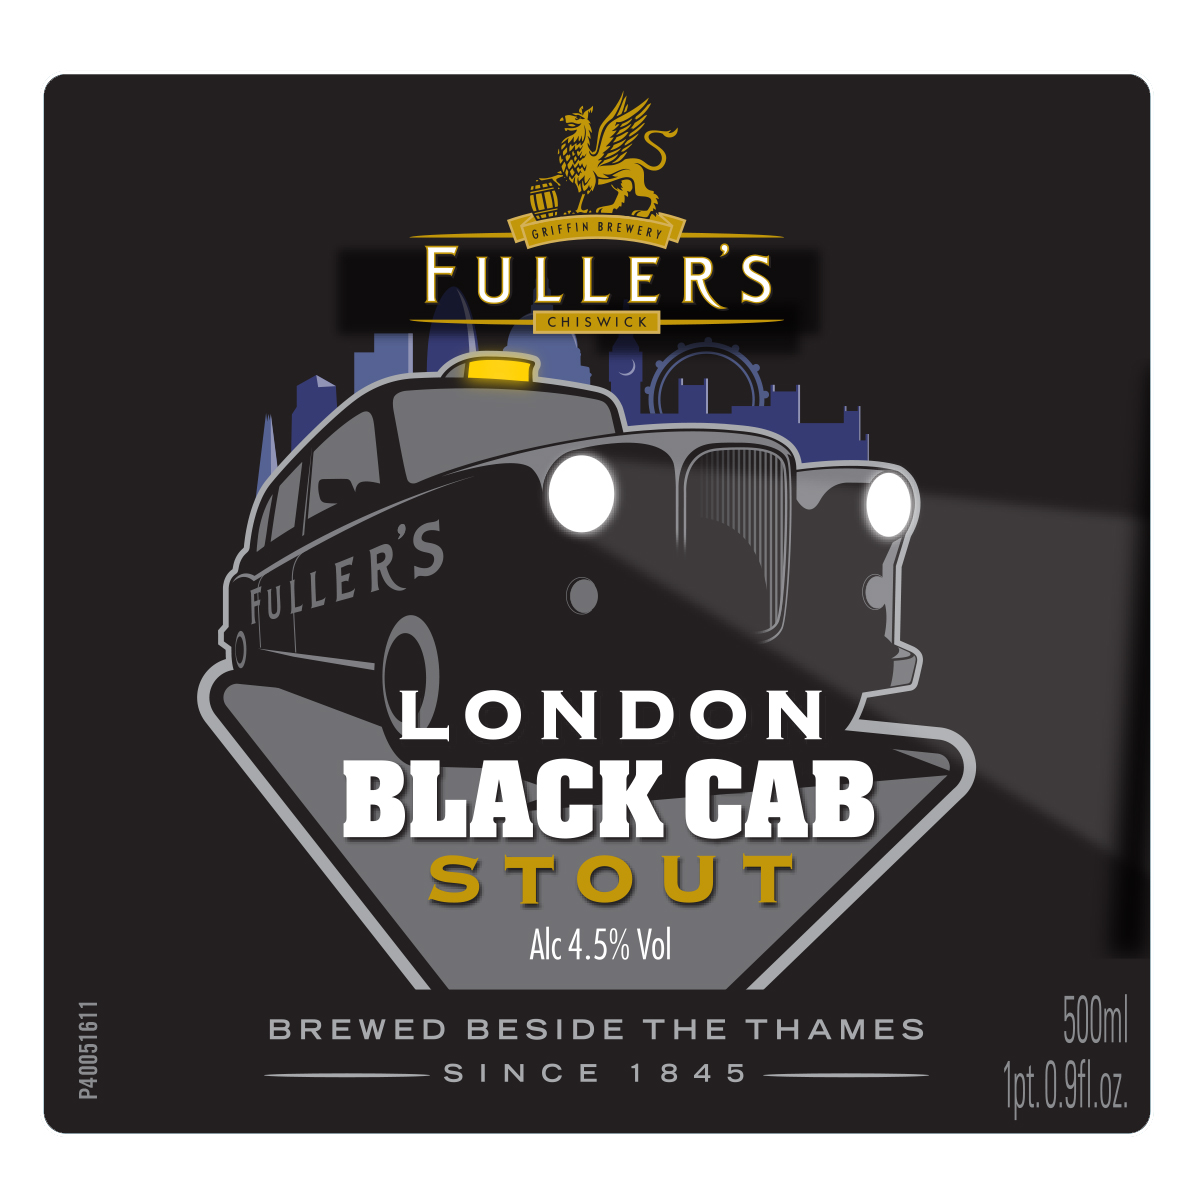 LONDON Black Cab Stout